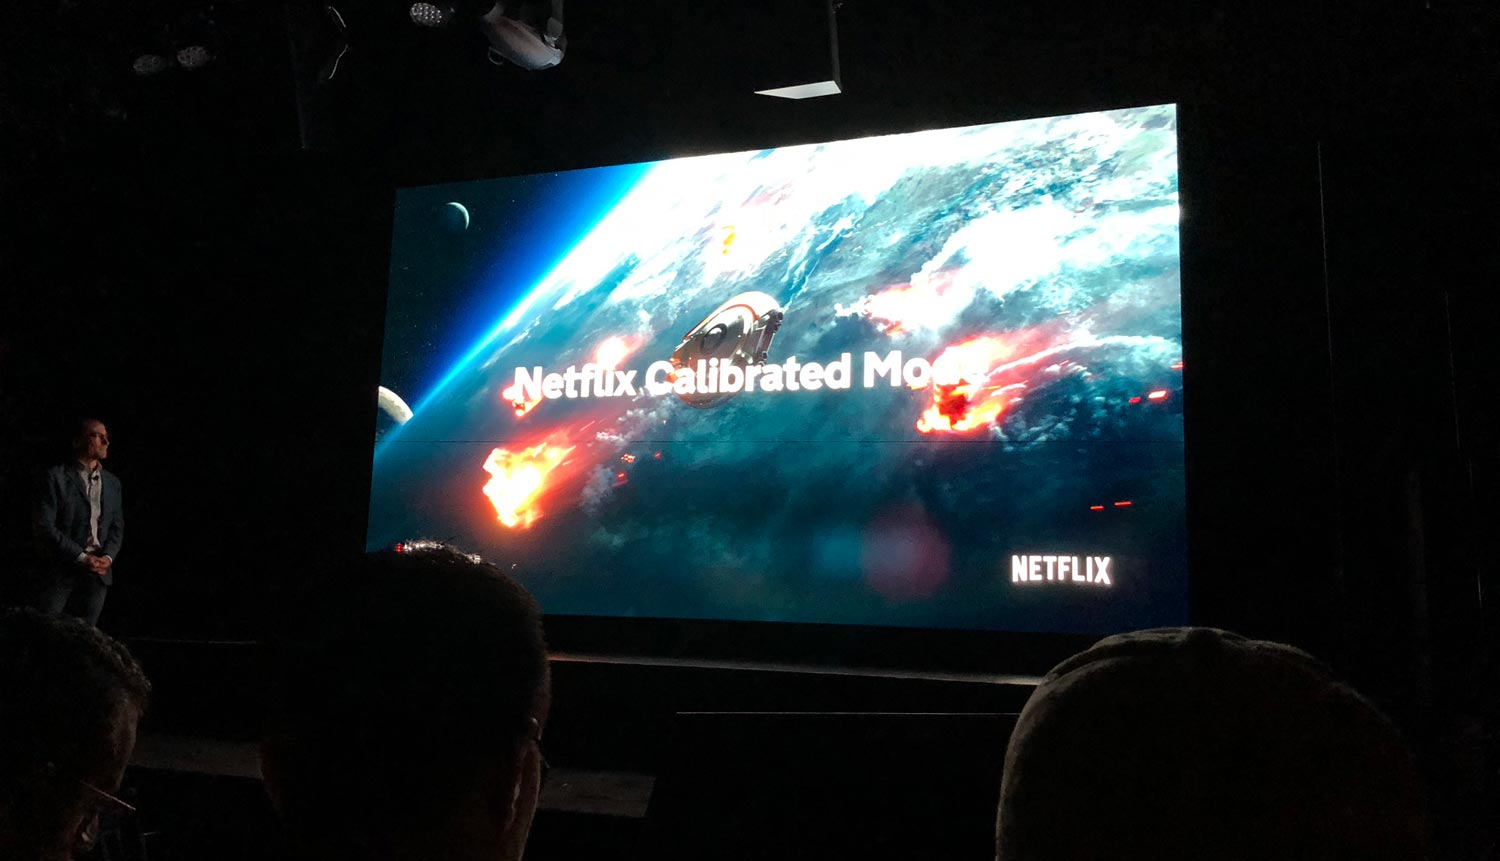 Netflix Calibrated Mode' coming exclusively to Sony Master OLED